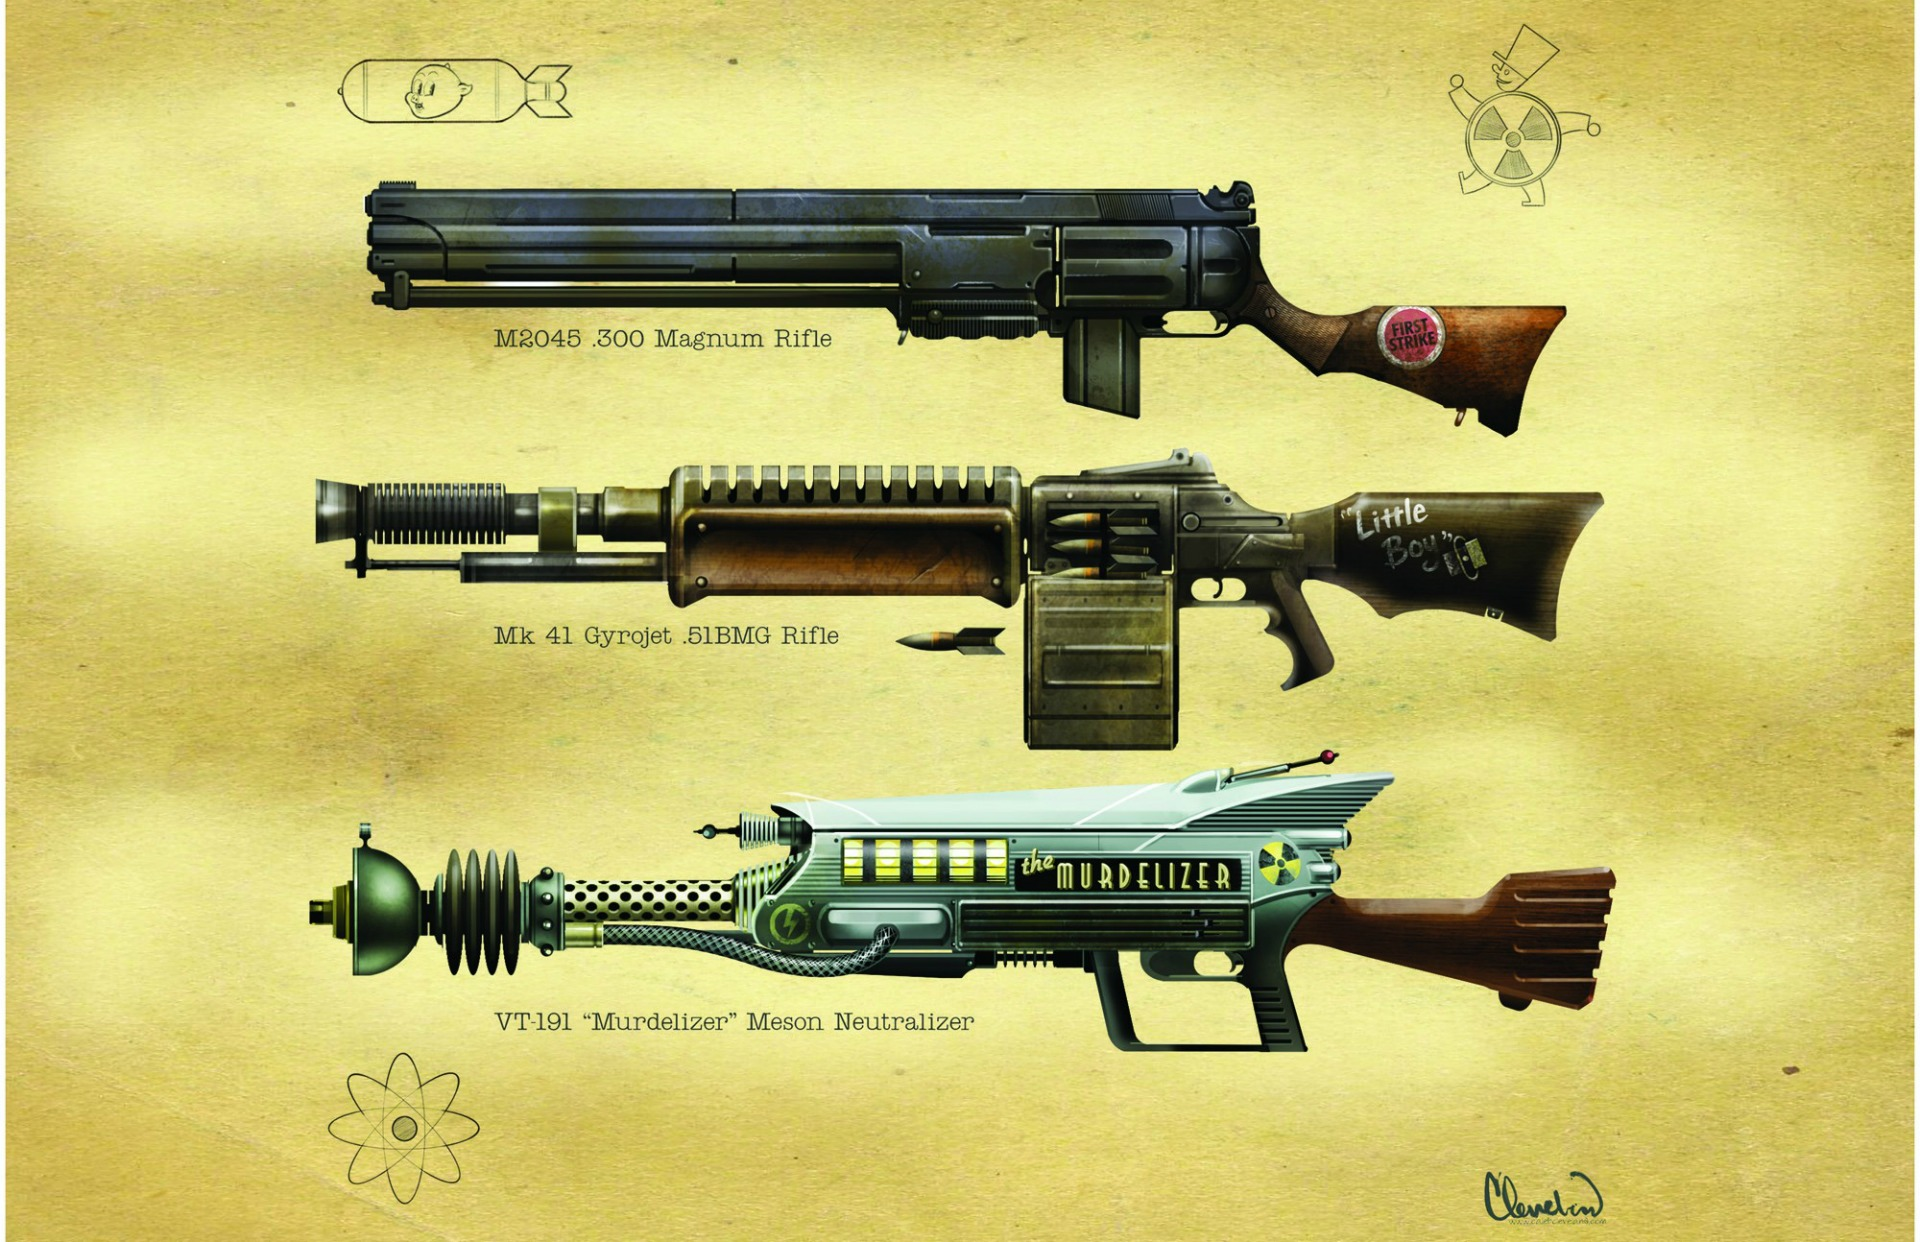 weapons of the future hd wallpaper background image